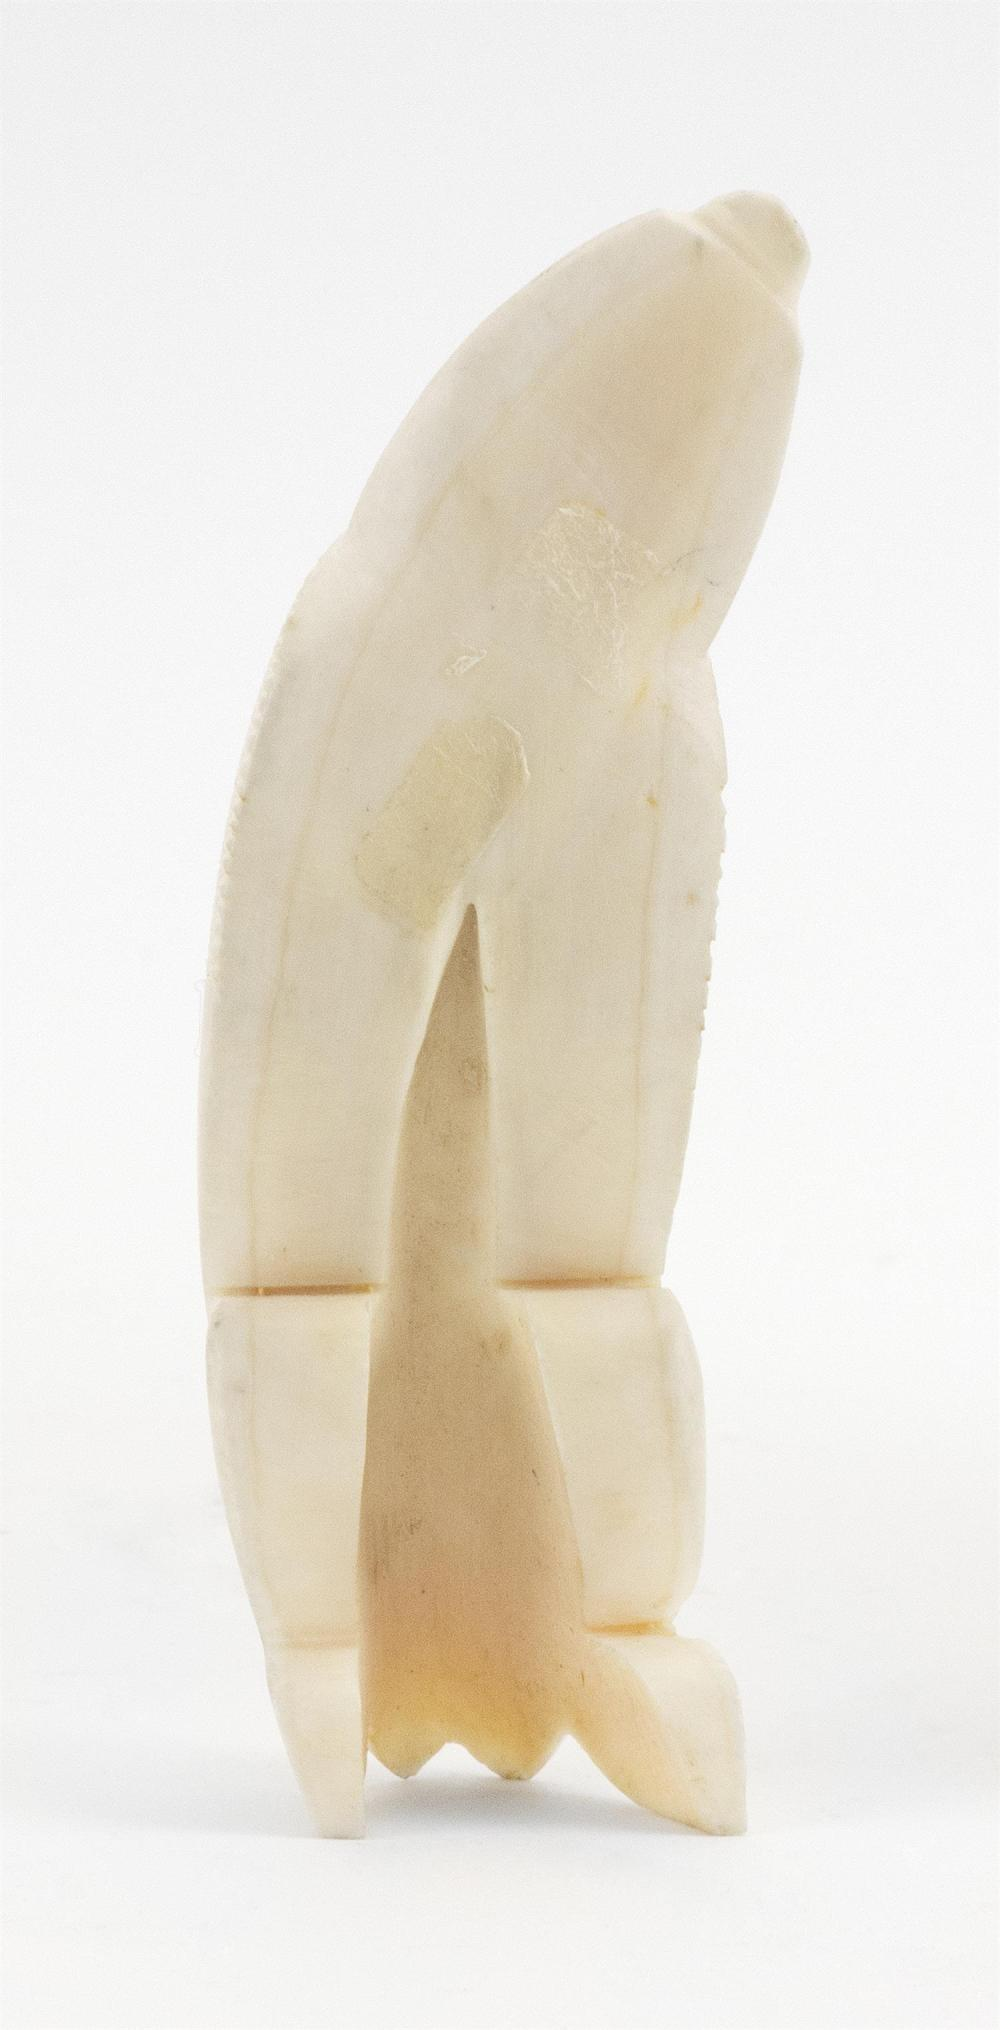 INUIT WALRUS IVORY CARVING OF AN INSECT-LIKE TUPILAK With inlaid eyes. Length 4.4